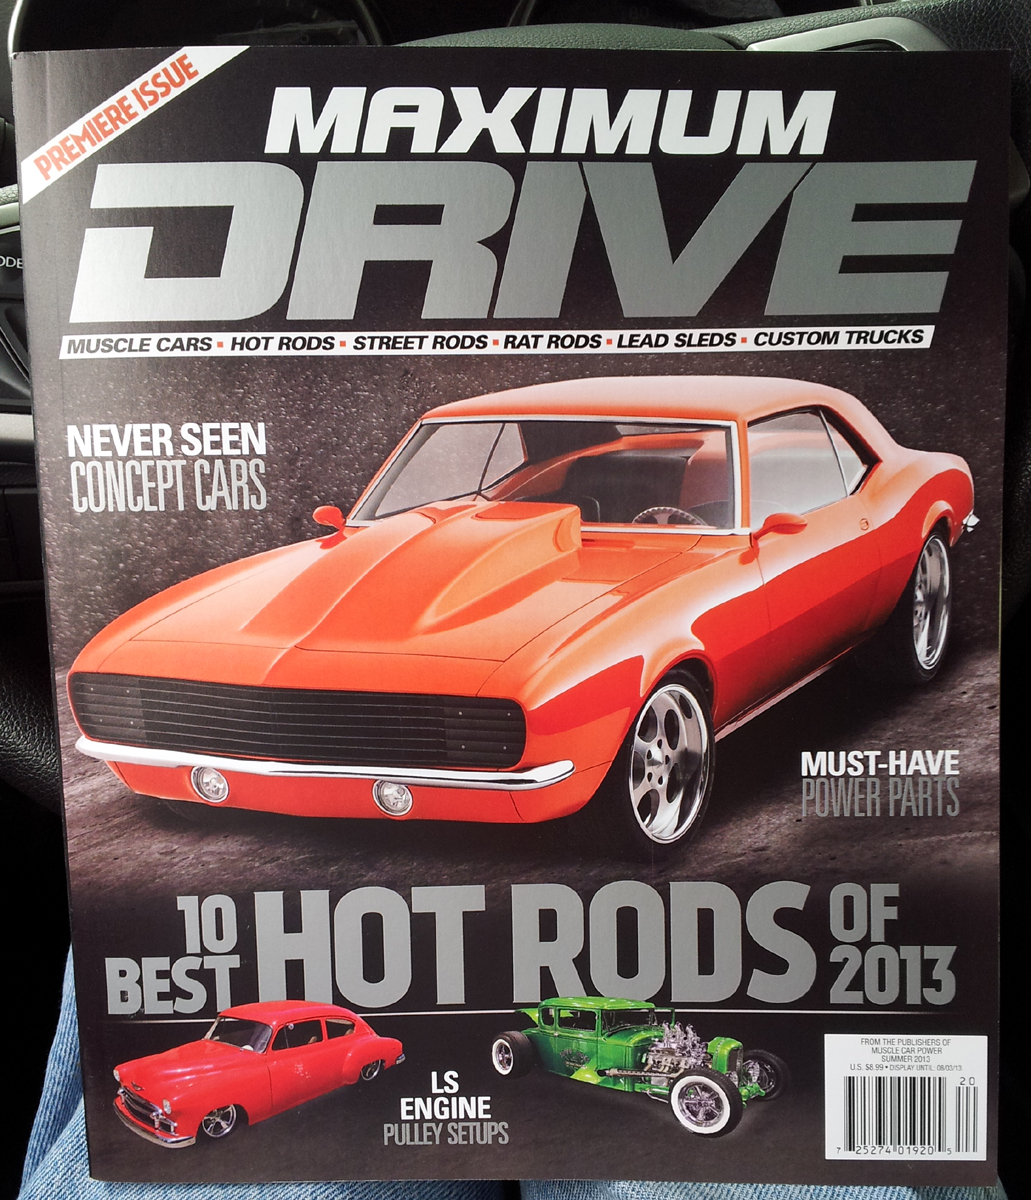 Just A Car Guy New Magazine Premiere Issue On Magazine Stands Right